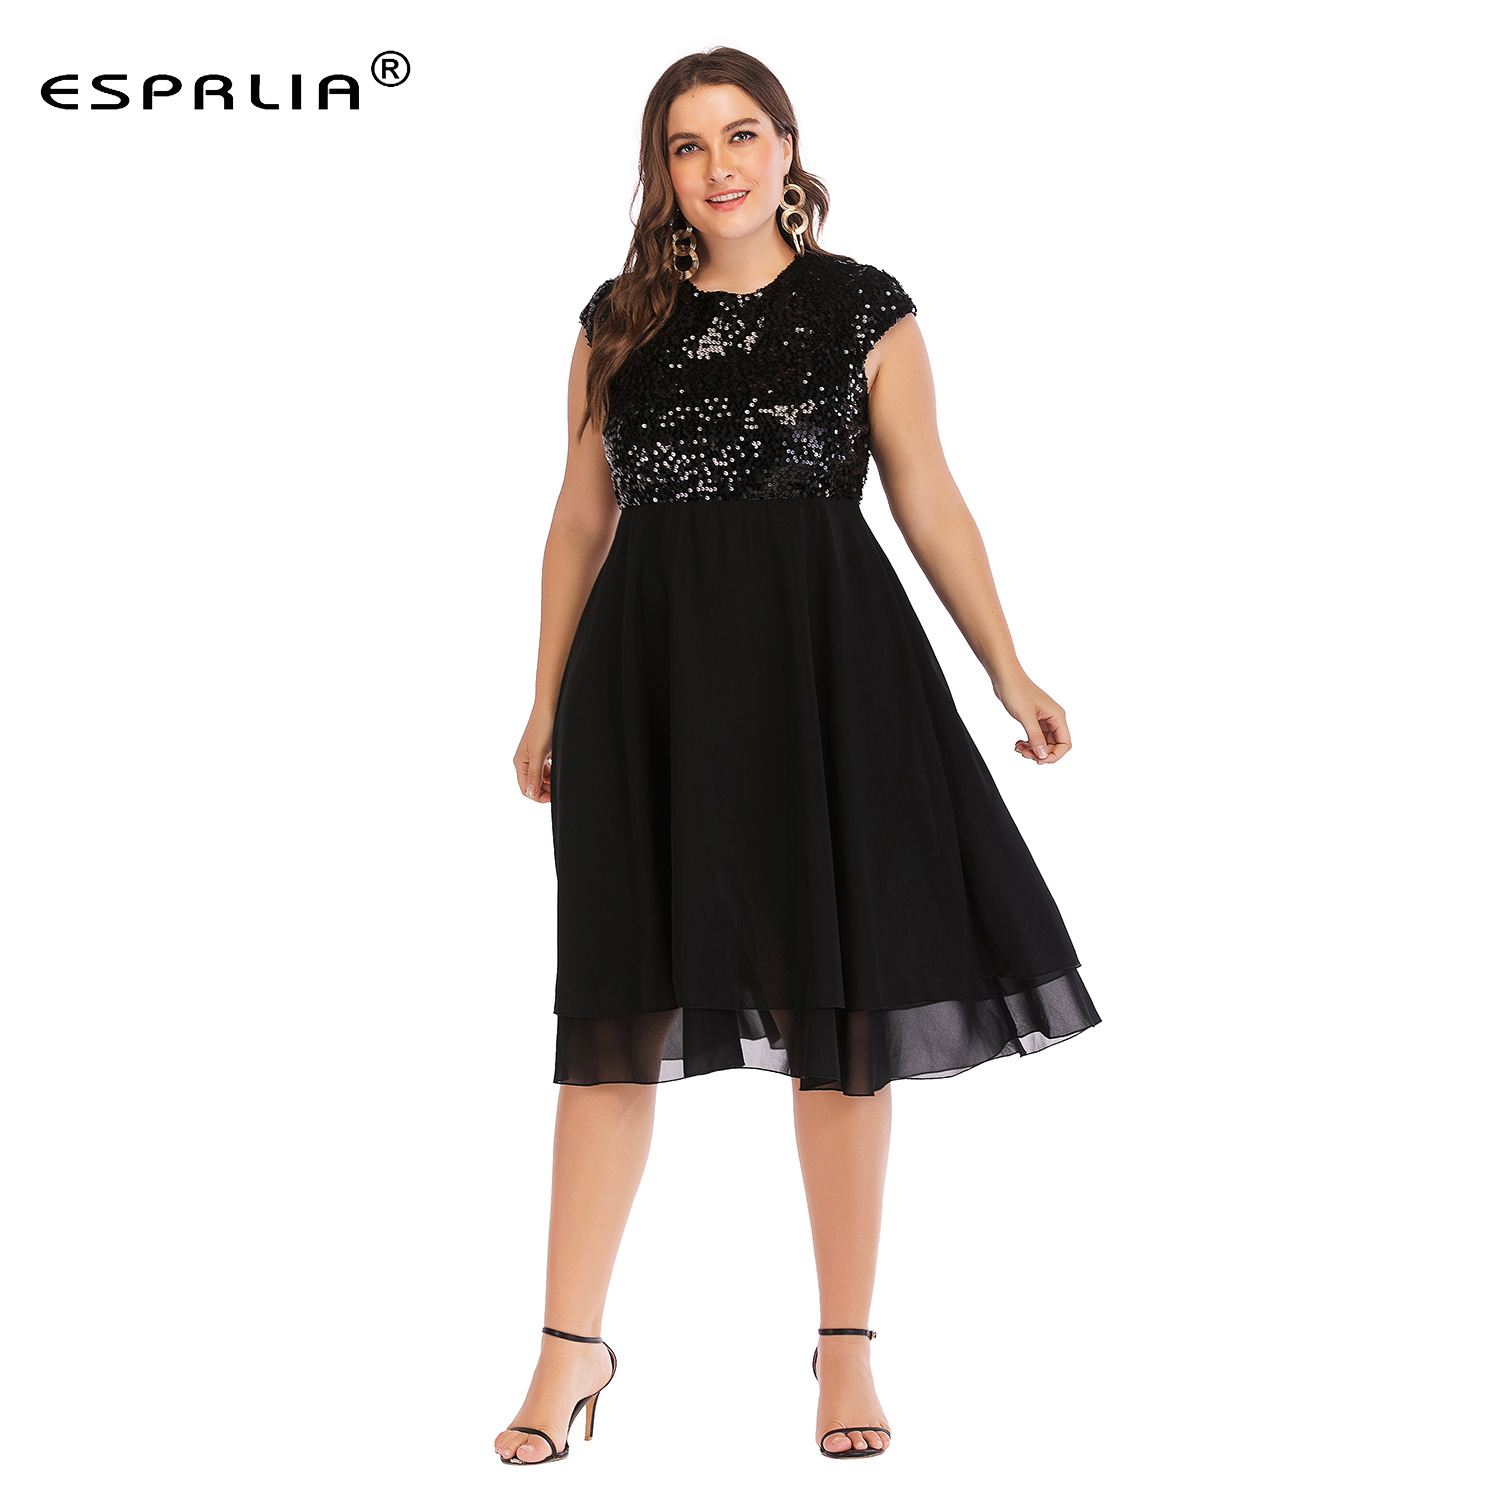 e0f39b1520c Detail Feedback Questions about ESPRLIA Womens Plus Size Sequin Short Cap  Sleeve Holiday Party Homecoming Midi Black Dress 3XL 4XL 5xl on  Aliexpress.com ...